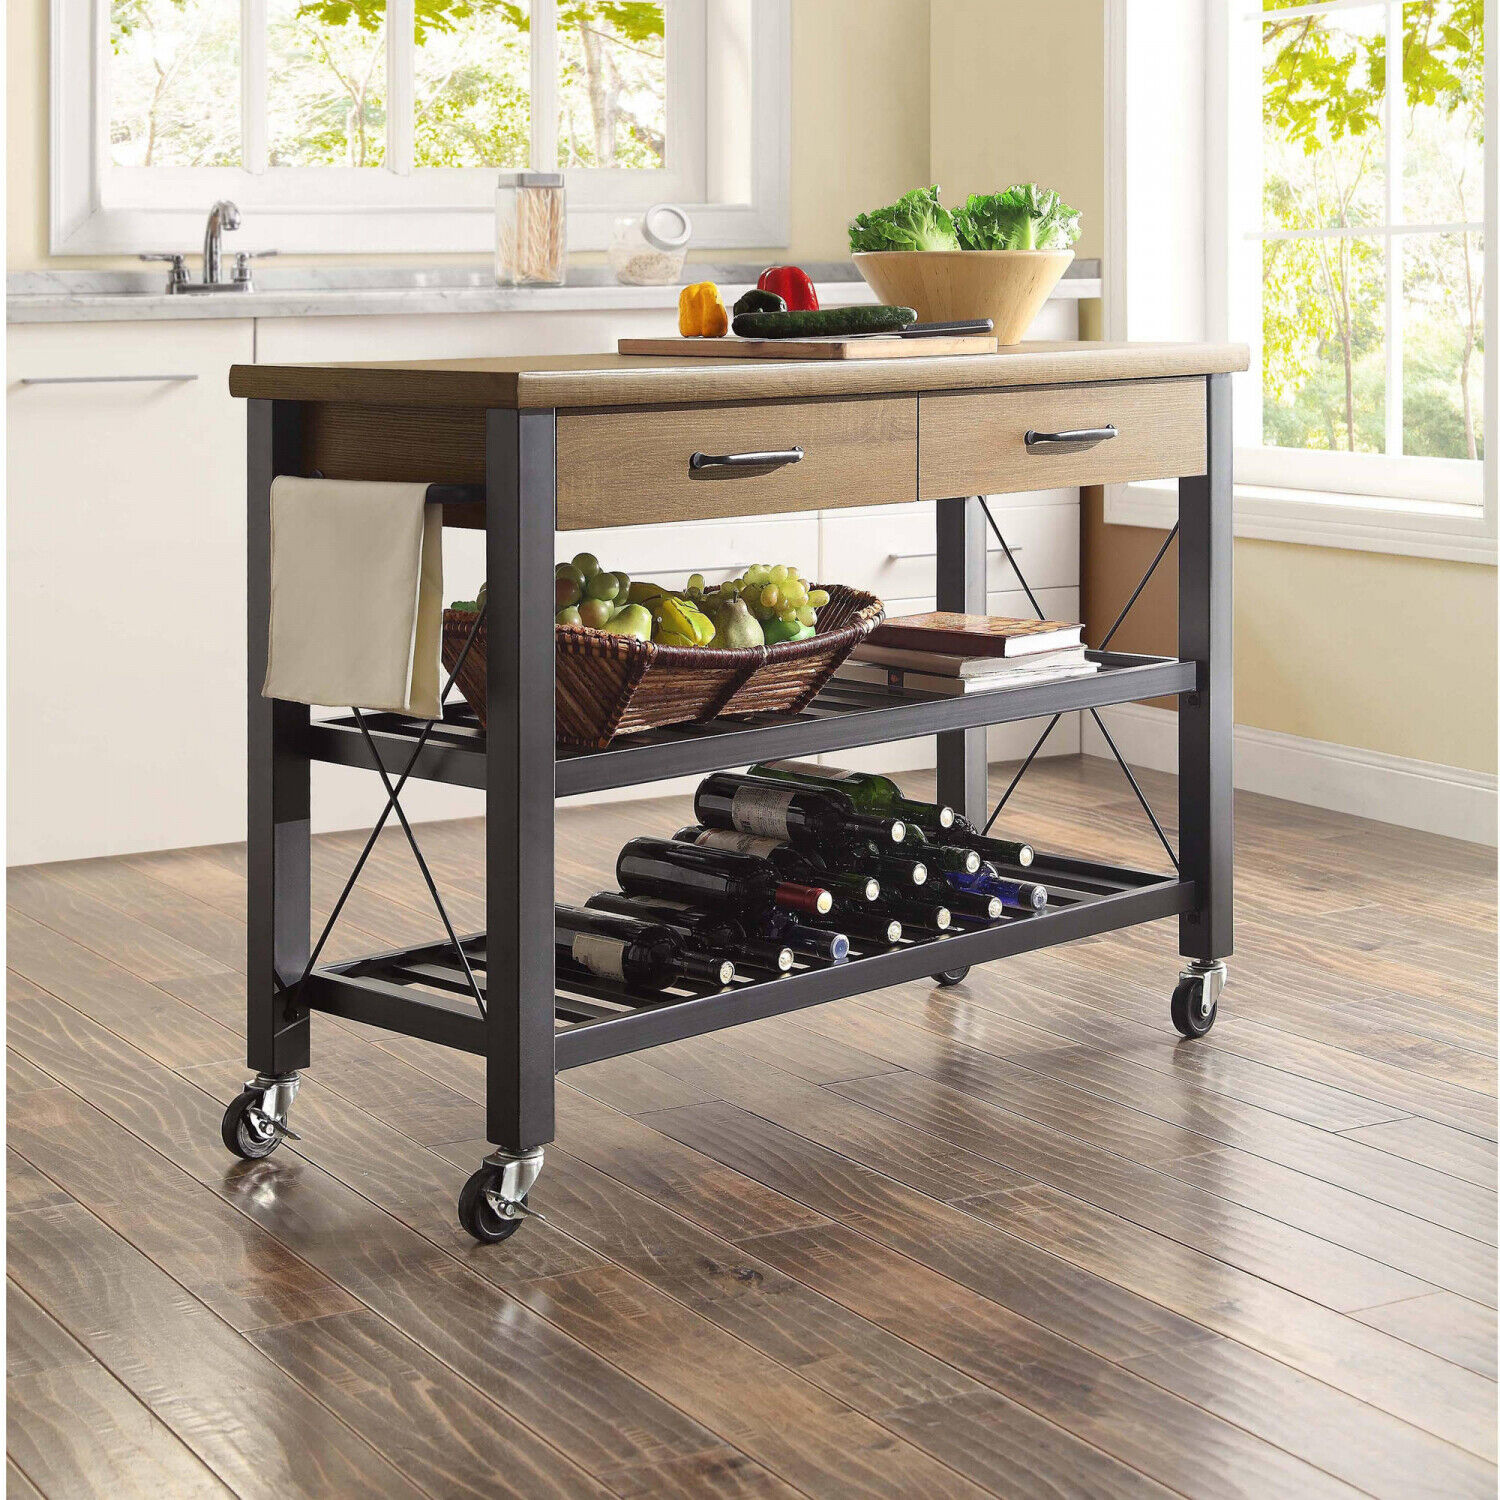 Picture of: Craftsmen French Country Butcher Block Kitchen Island Storage Work Table For Sale Online Ebay